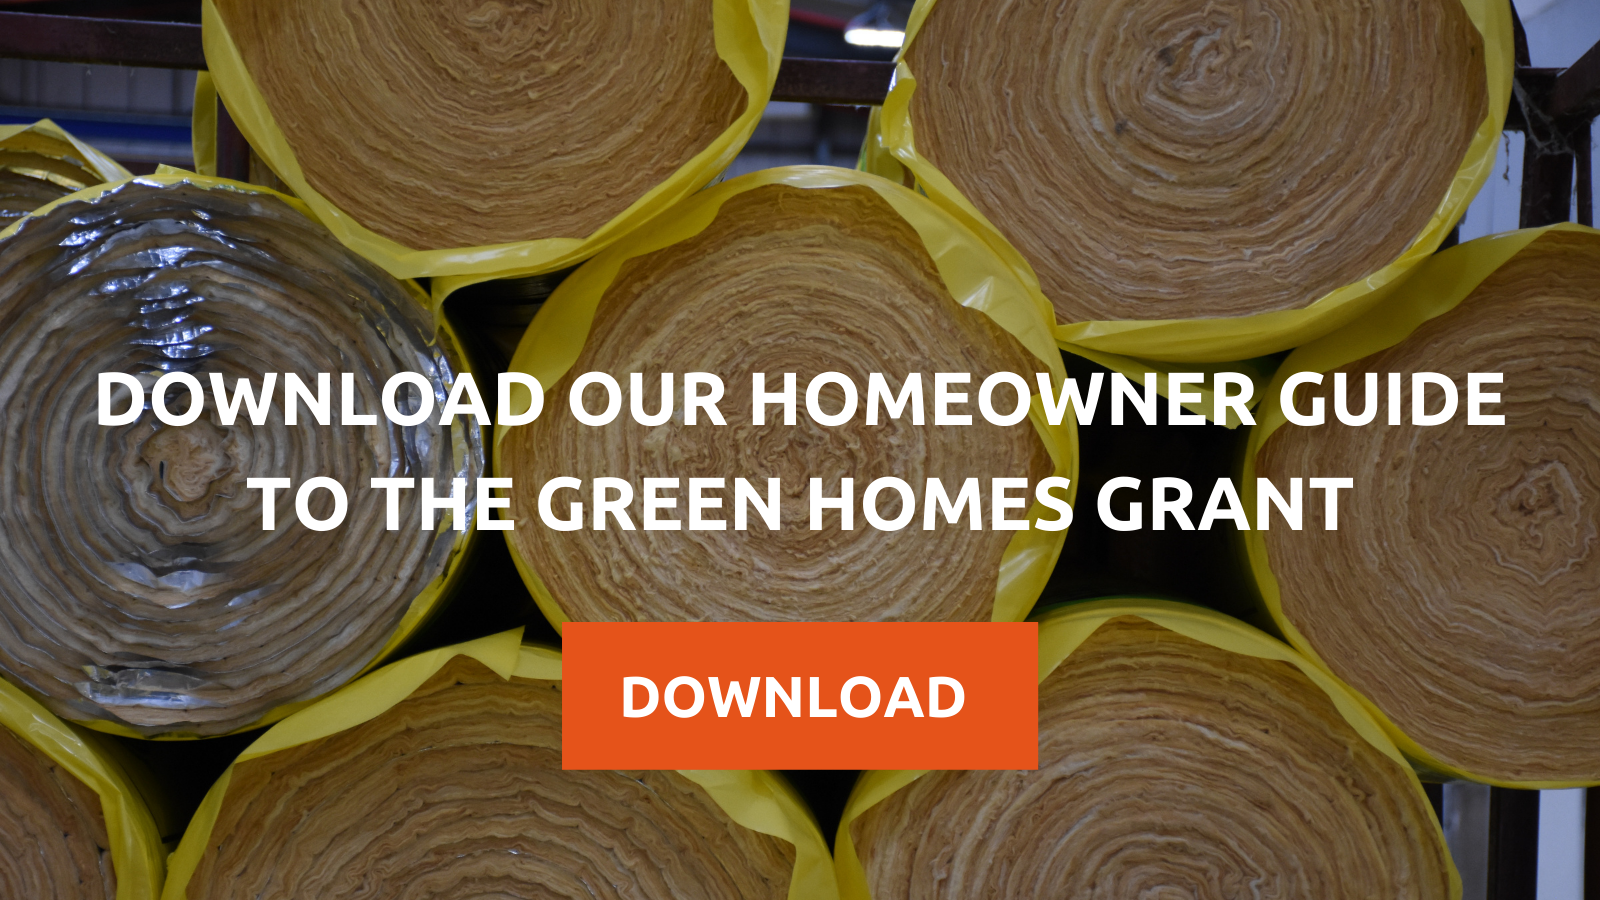 Download our Homeowner Guide to the Green Homes Grant